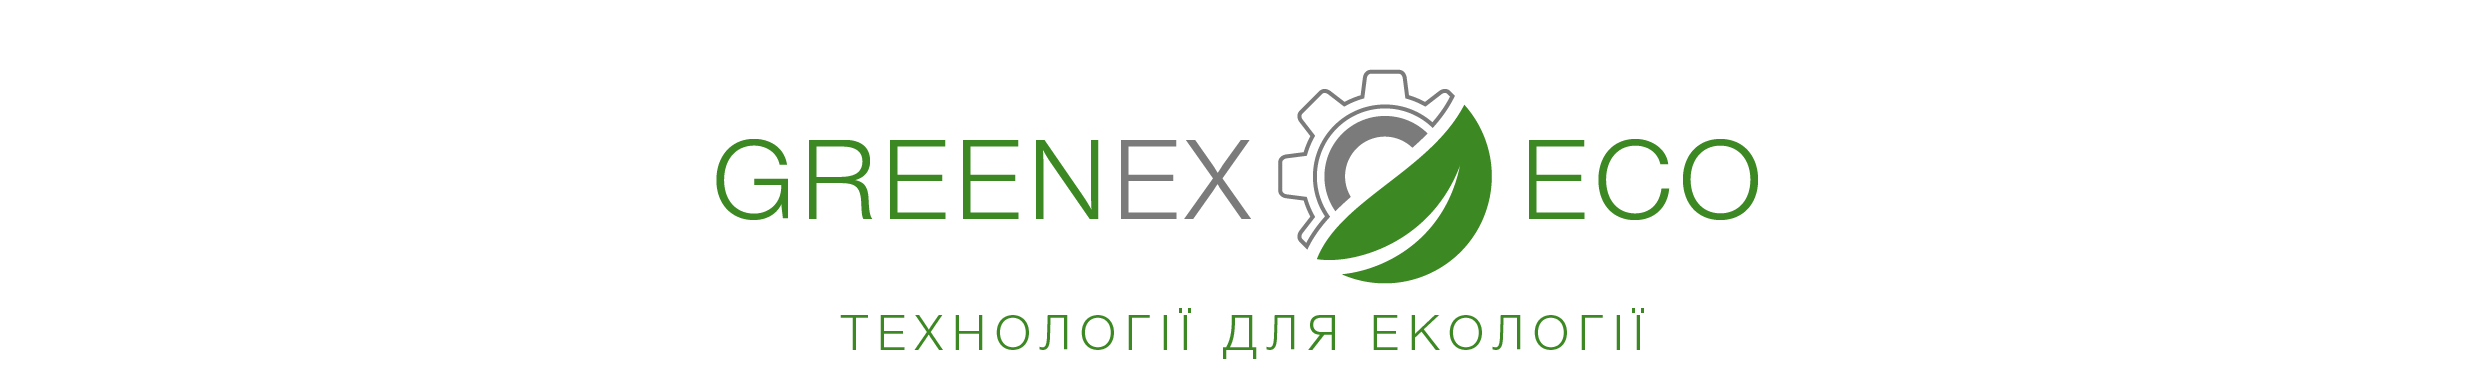 Greenex Eco logo